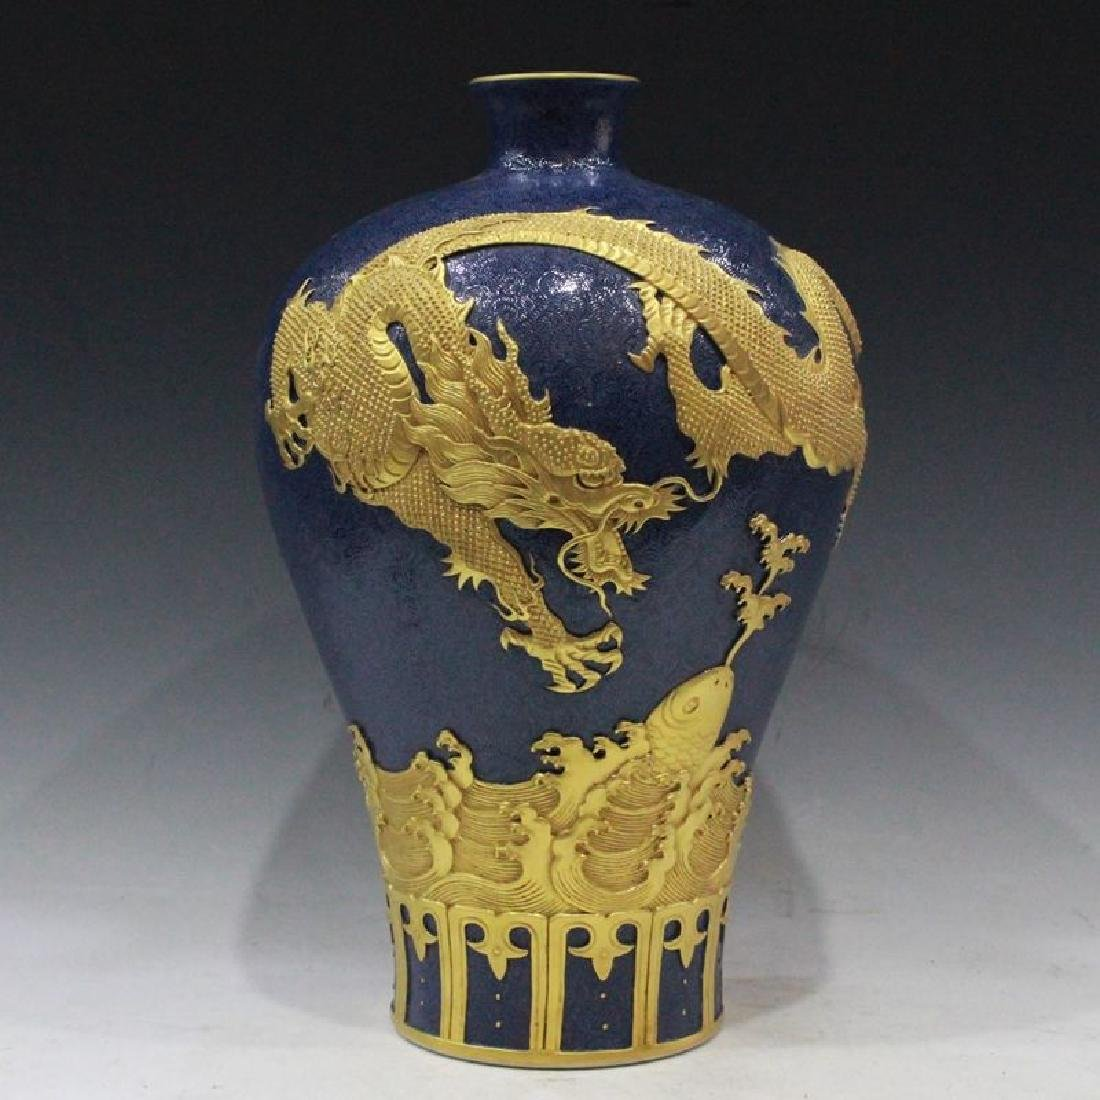 A Blue Glaze Gilt Decorated Porcelain Vase